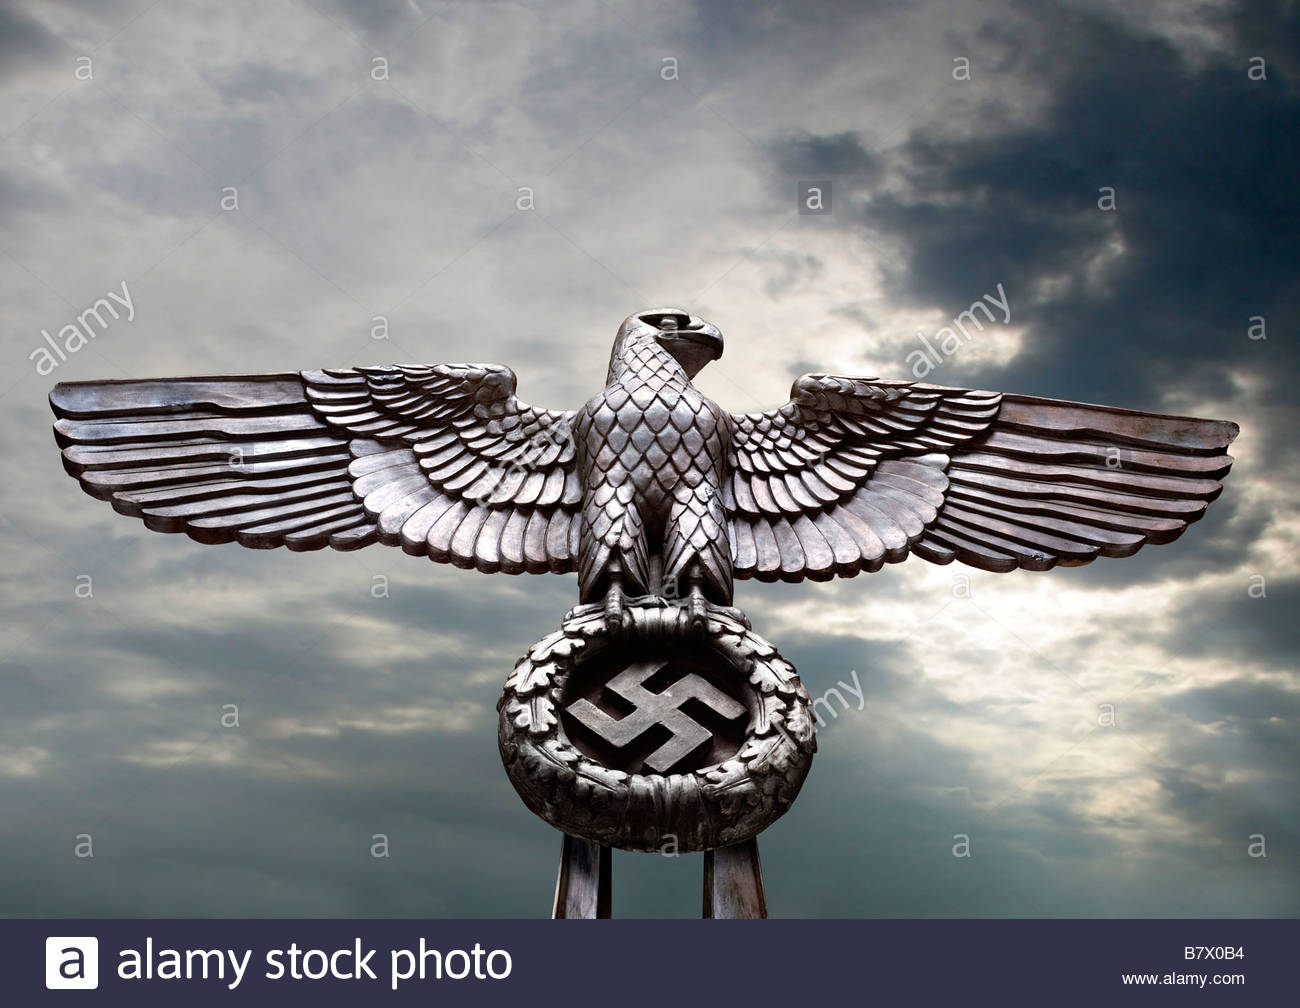 Swastika eagle stock photos swastika eagle stock images alamy nazi eagle sculpture clutching a wreath with a swastika symbol seen against a dark stormy biocorpaavc